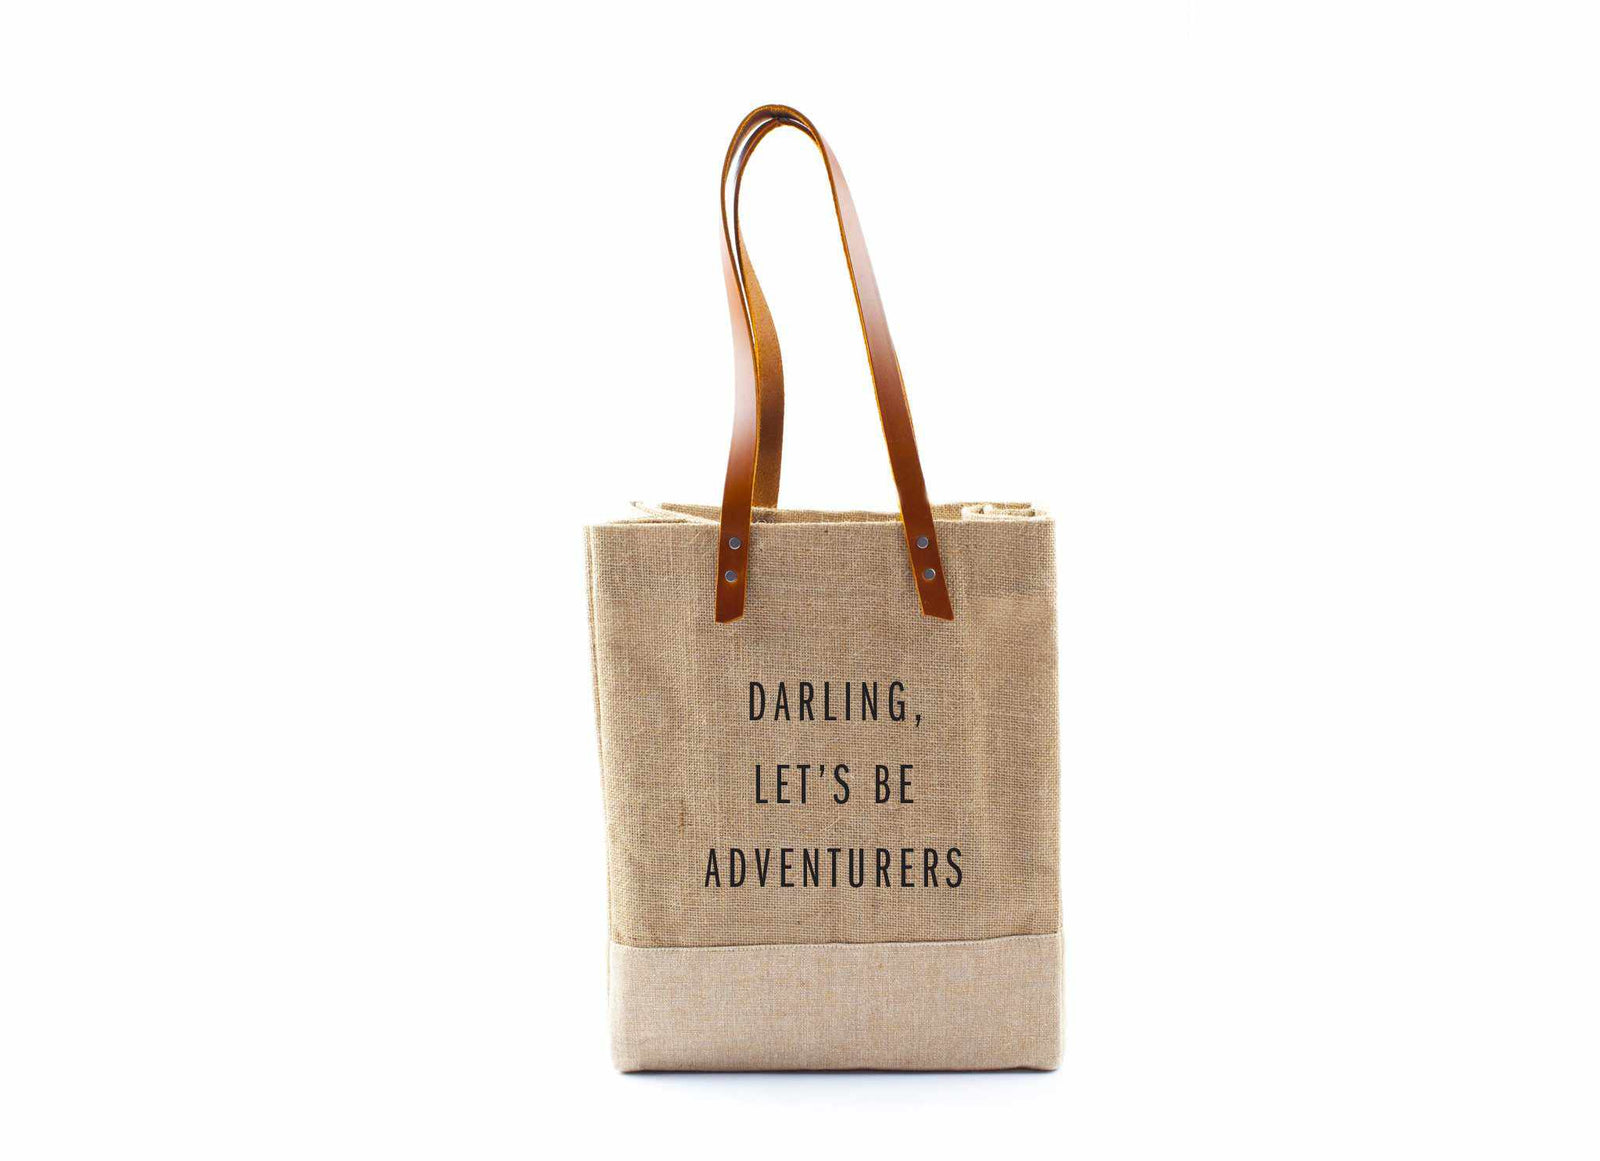 'Darling, Let's Be Adventurers' Wine Tote, August 4 Only